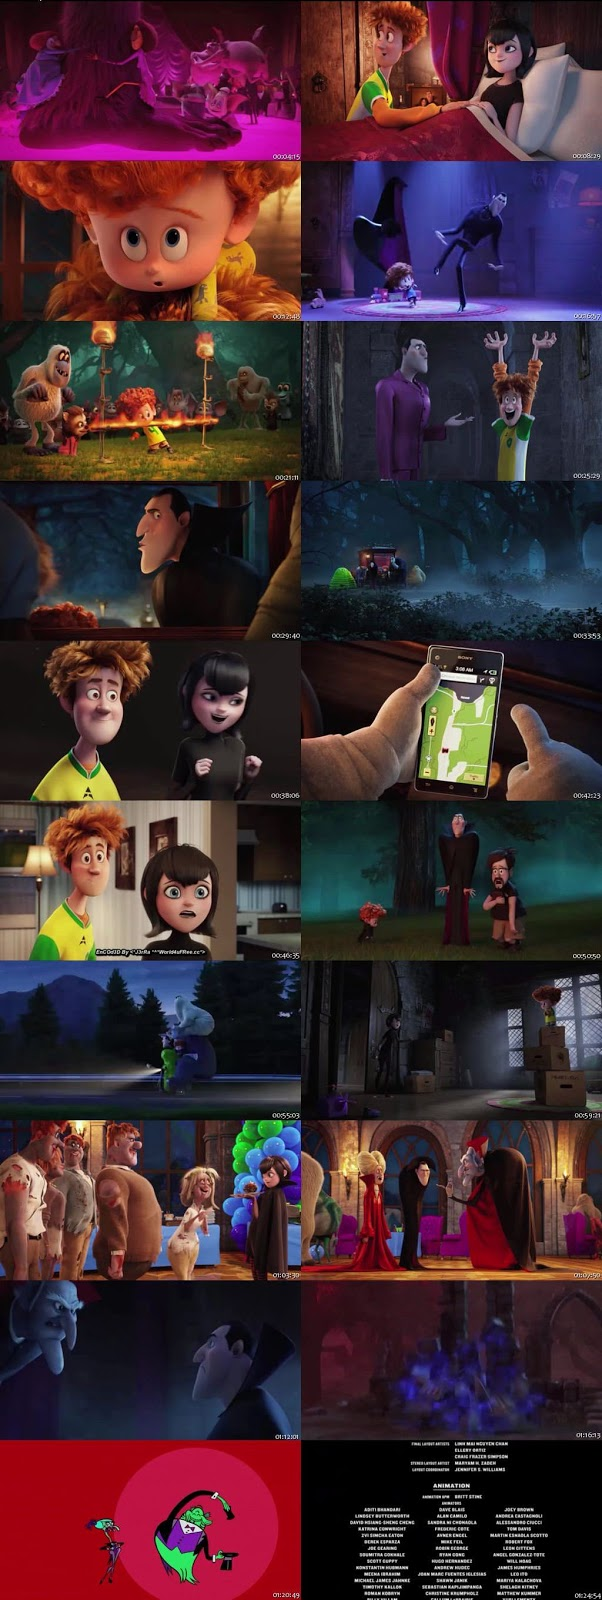 Hotel Transylvania 2 2015 English